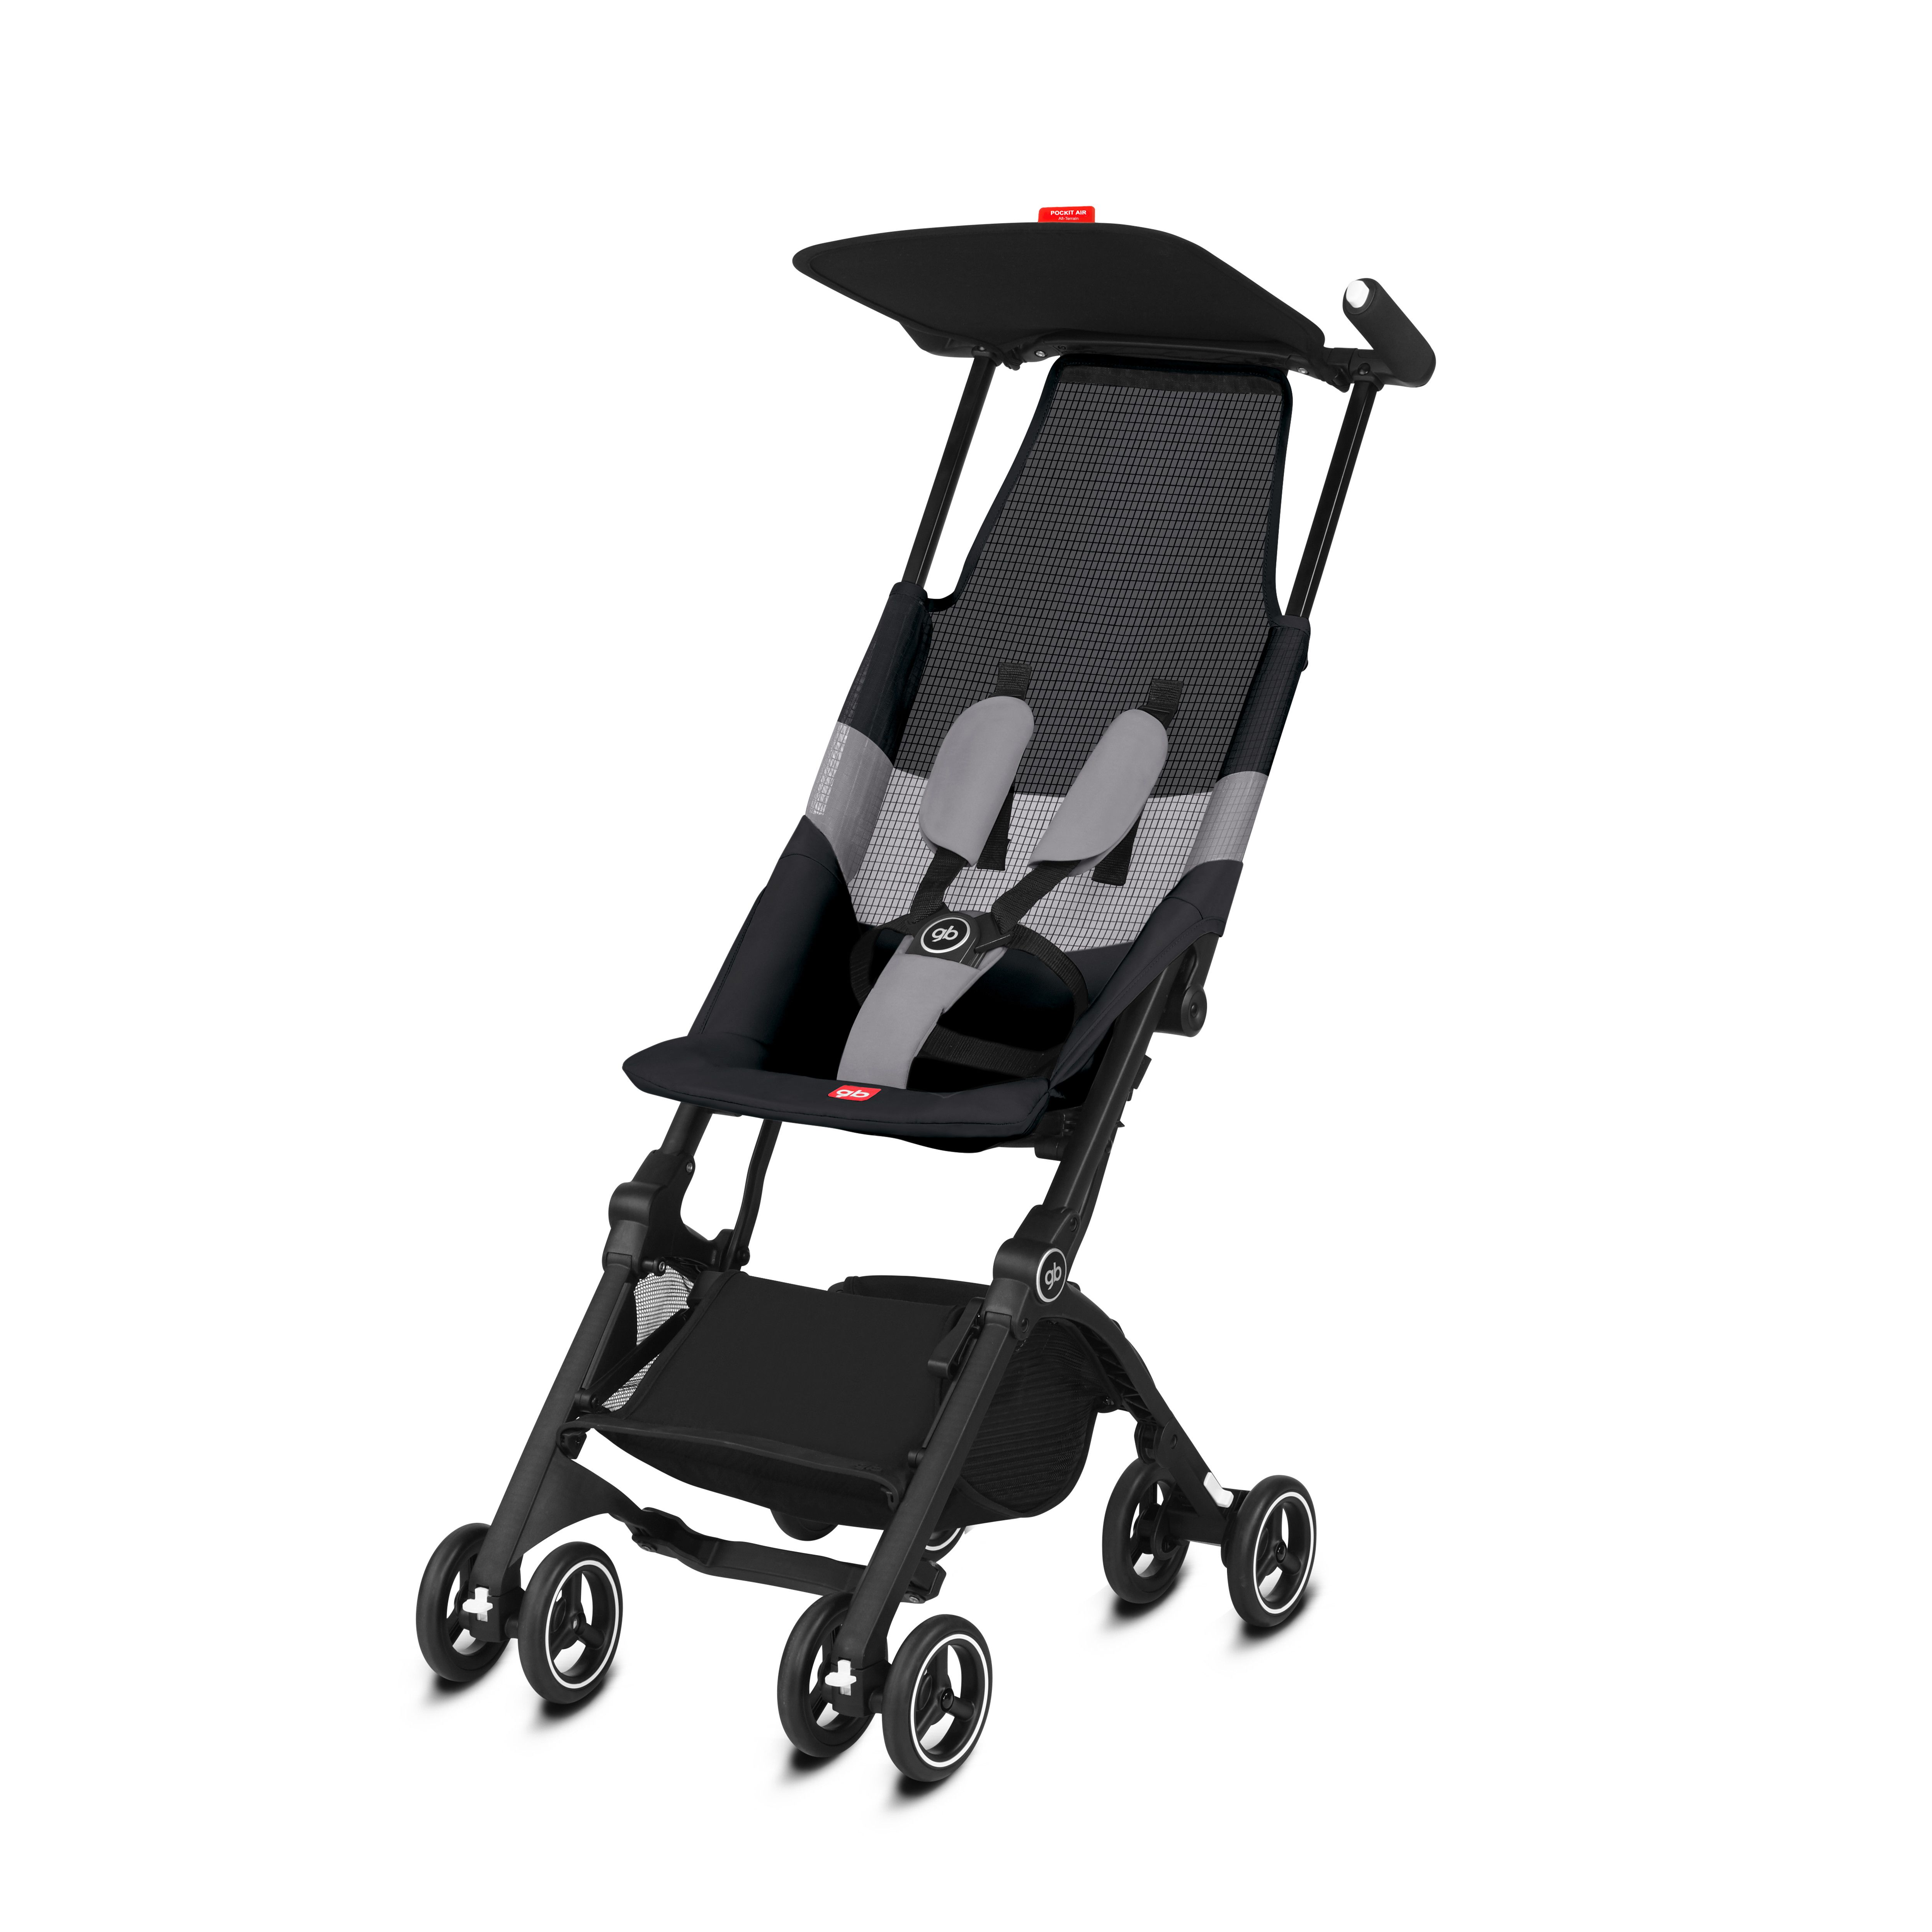 GB Pockit Stroller Review Canyon Couple Gb pockit